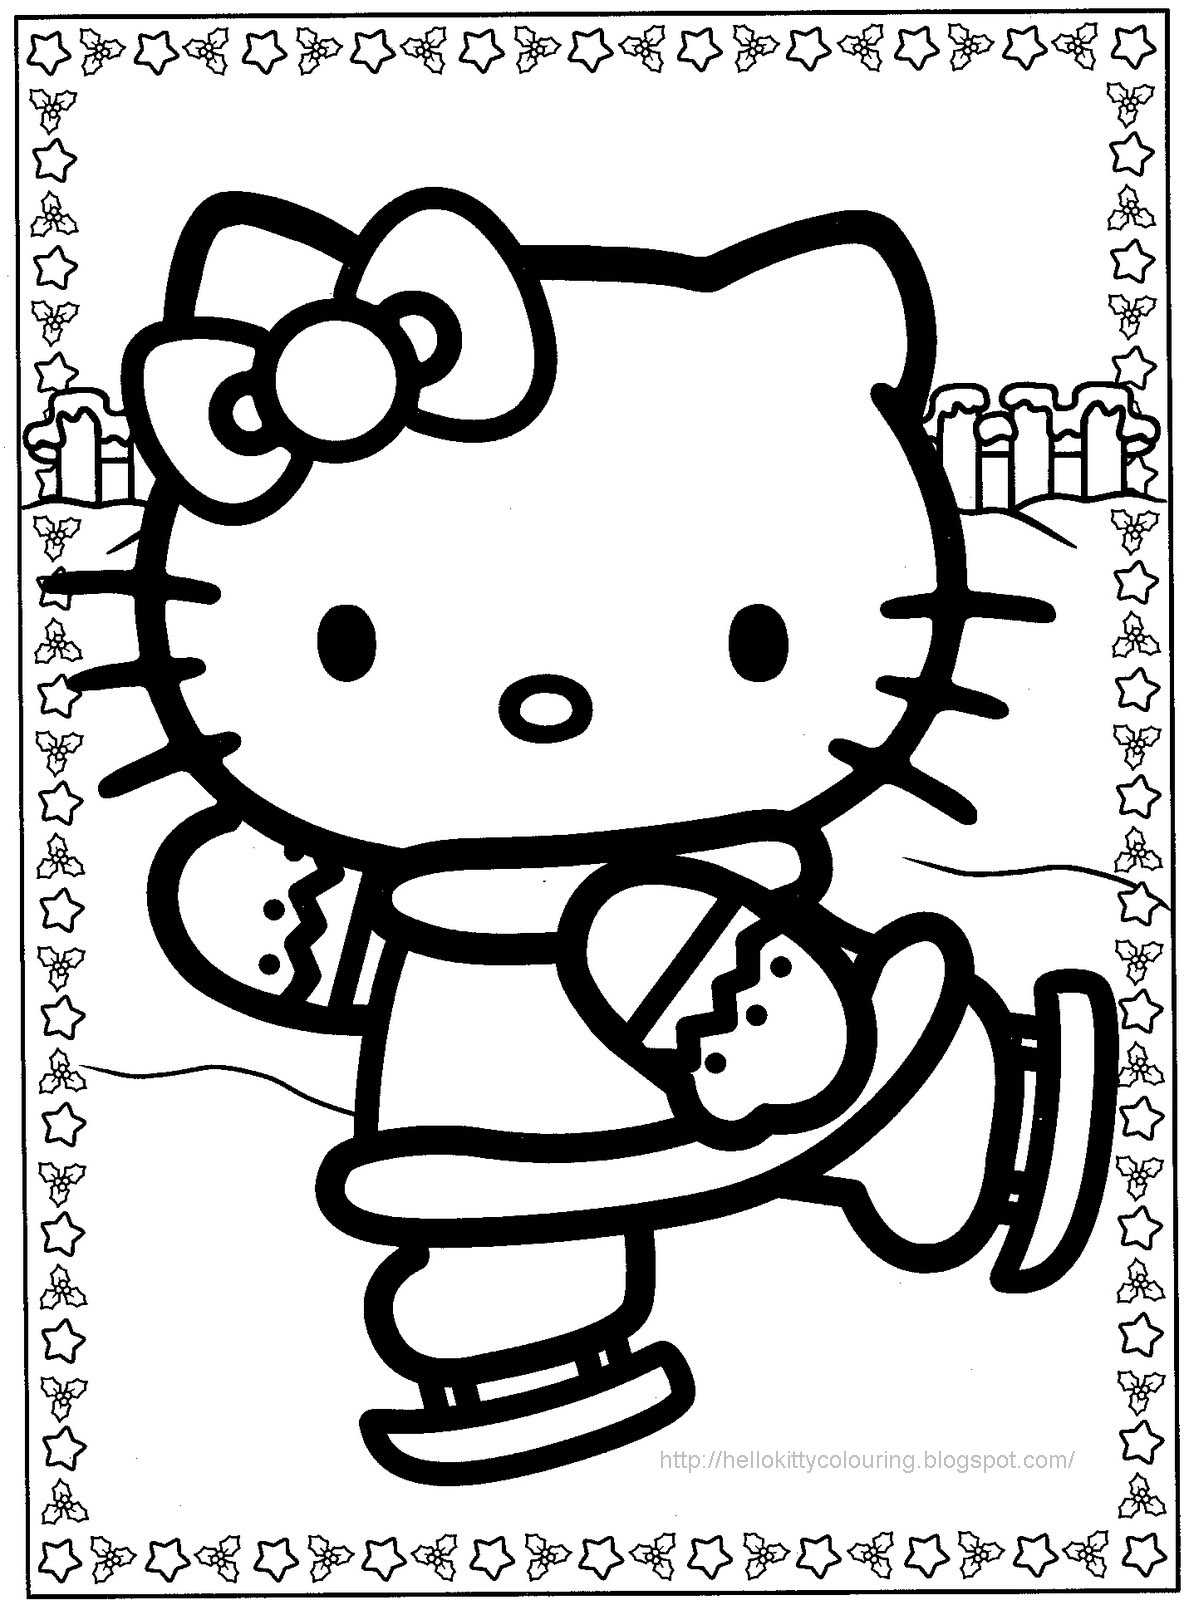 hello kitty coloring pages free hello kitty coloring pages the sun flower pages kitty free hello pages coloring